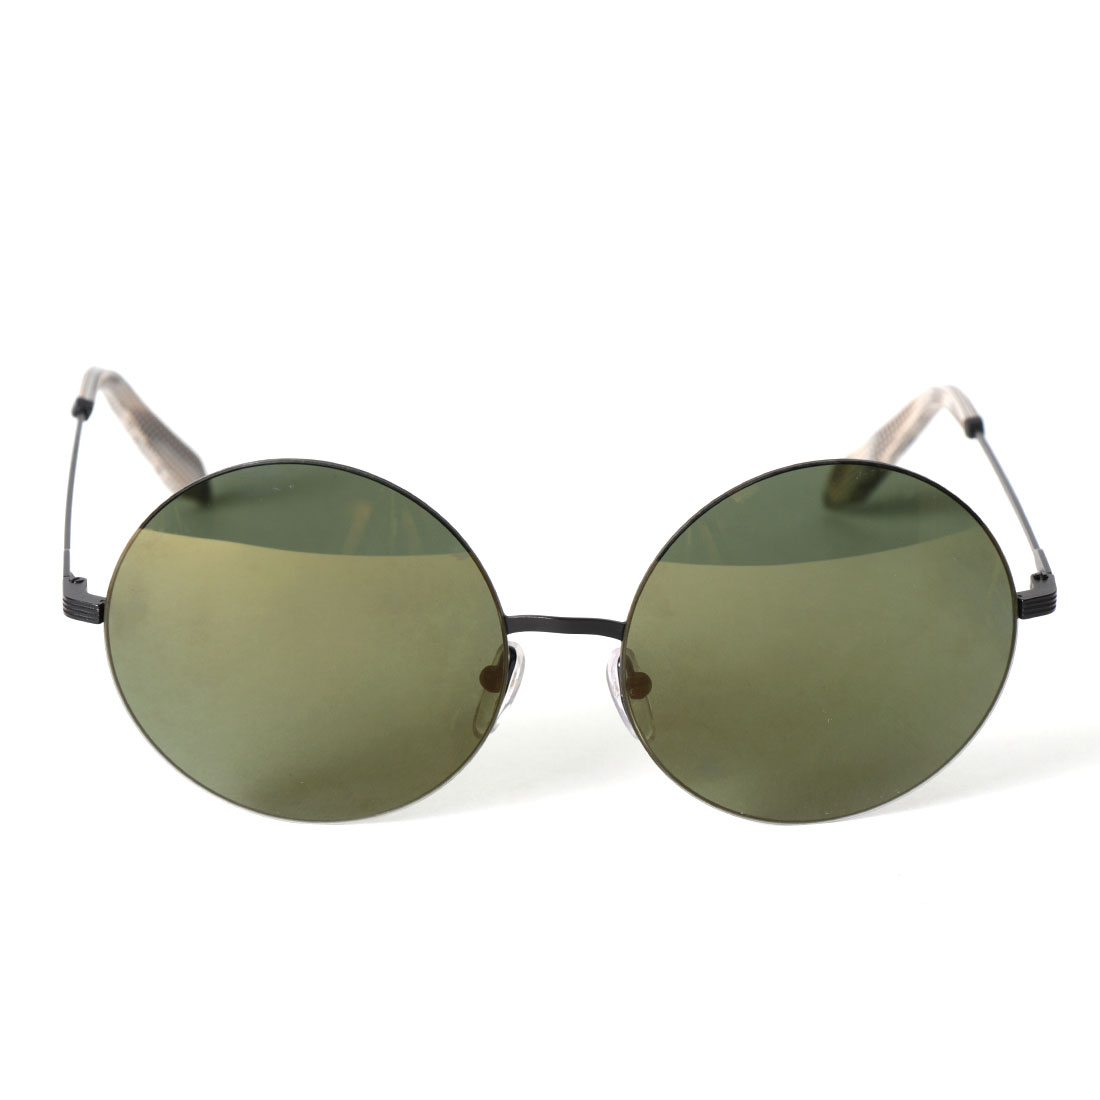 292ff9bca Victoria Beckham Feather Round Stainless Steel And Acetate Sunglasses | The  Lux Portal